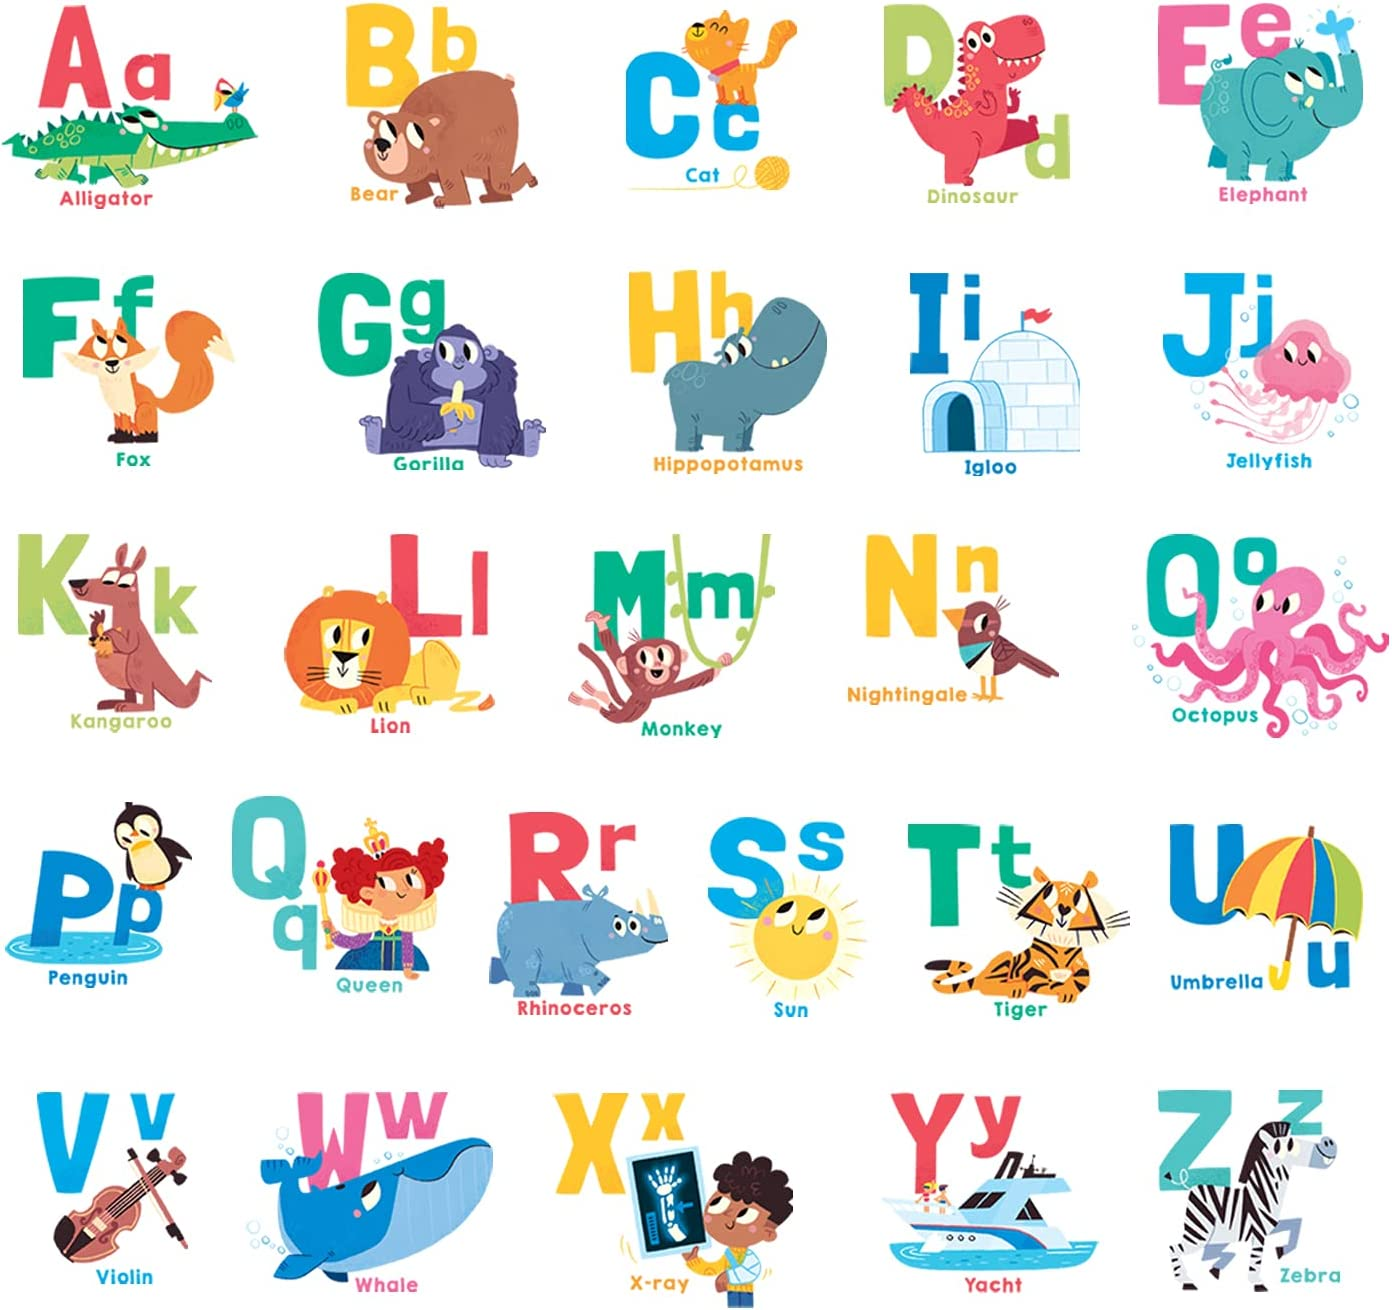 DECOWALL DWL-2101 Alphabet Wall Stickers Decals Peel and Stick Removable for Kids Nursery Bedroom Living Room art murals decorations decor decorative repositionable bathroom kitchen toddlers girls baby…